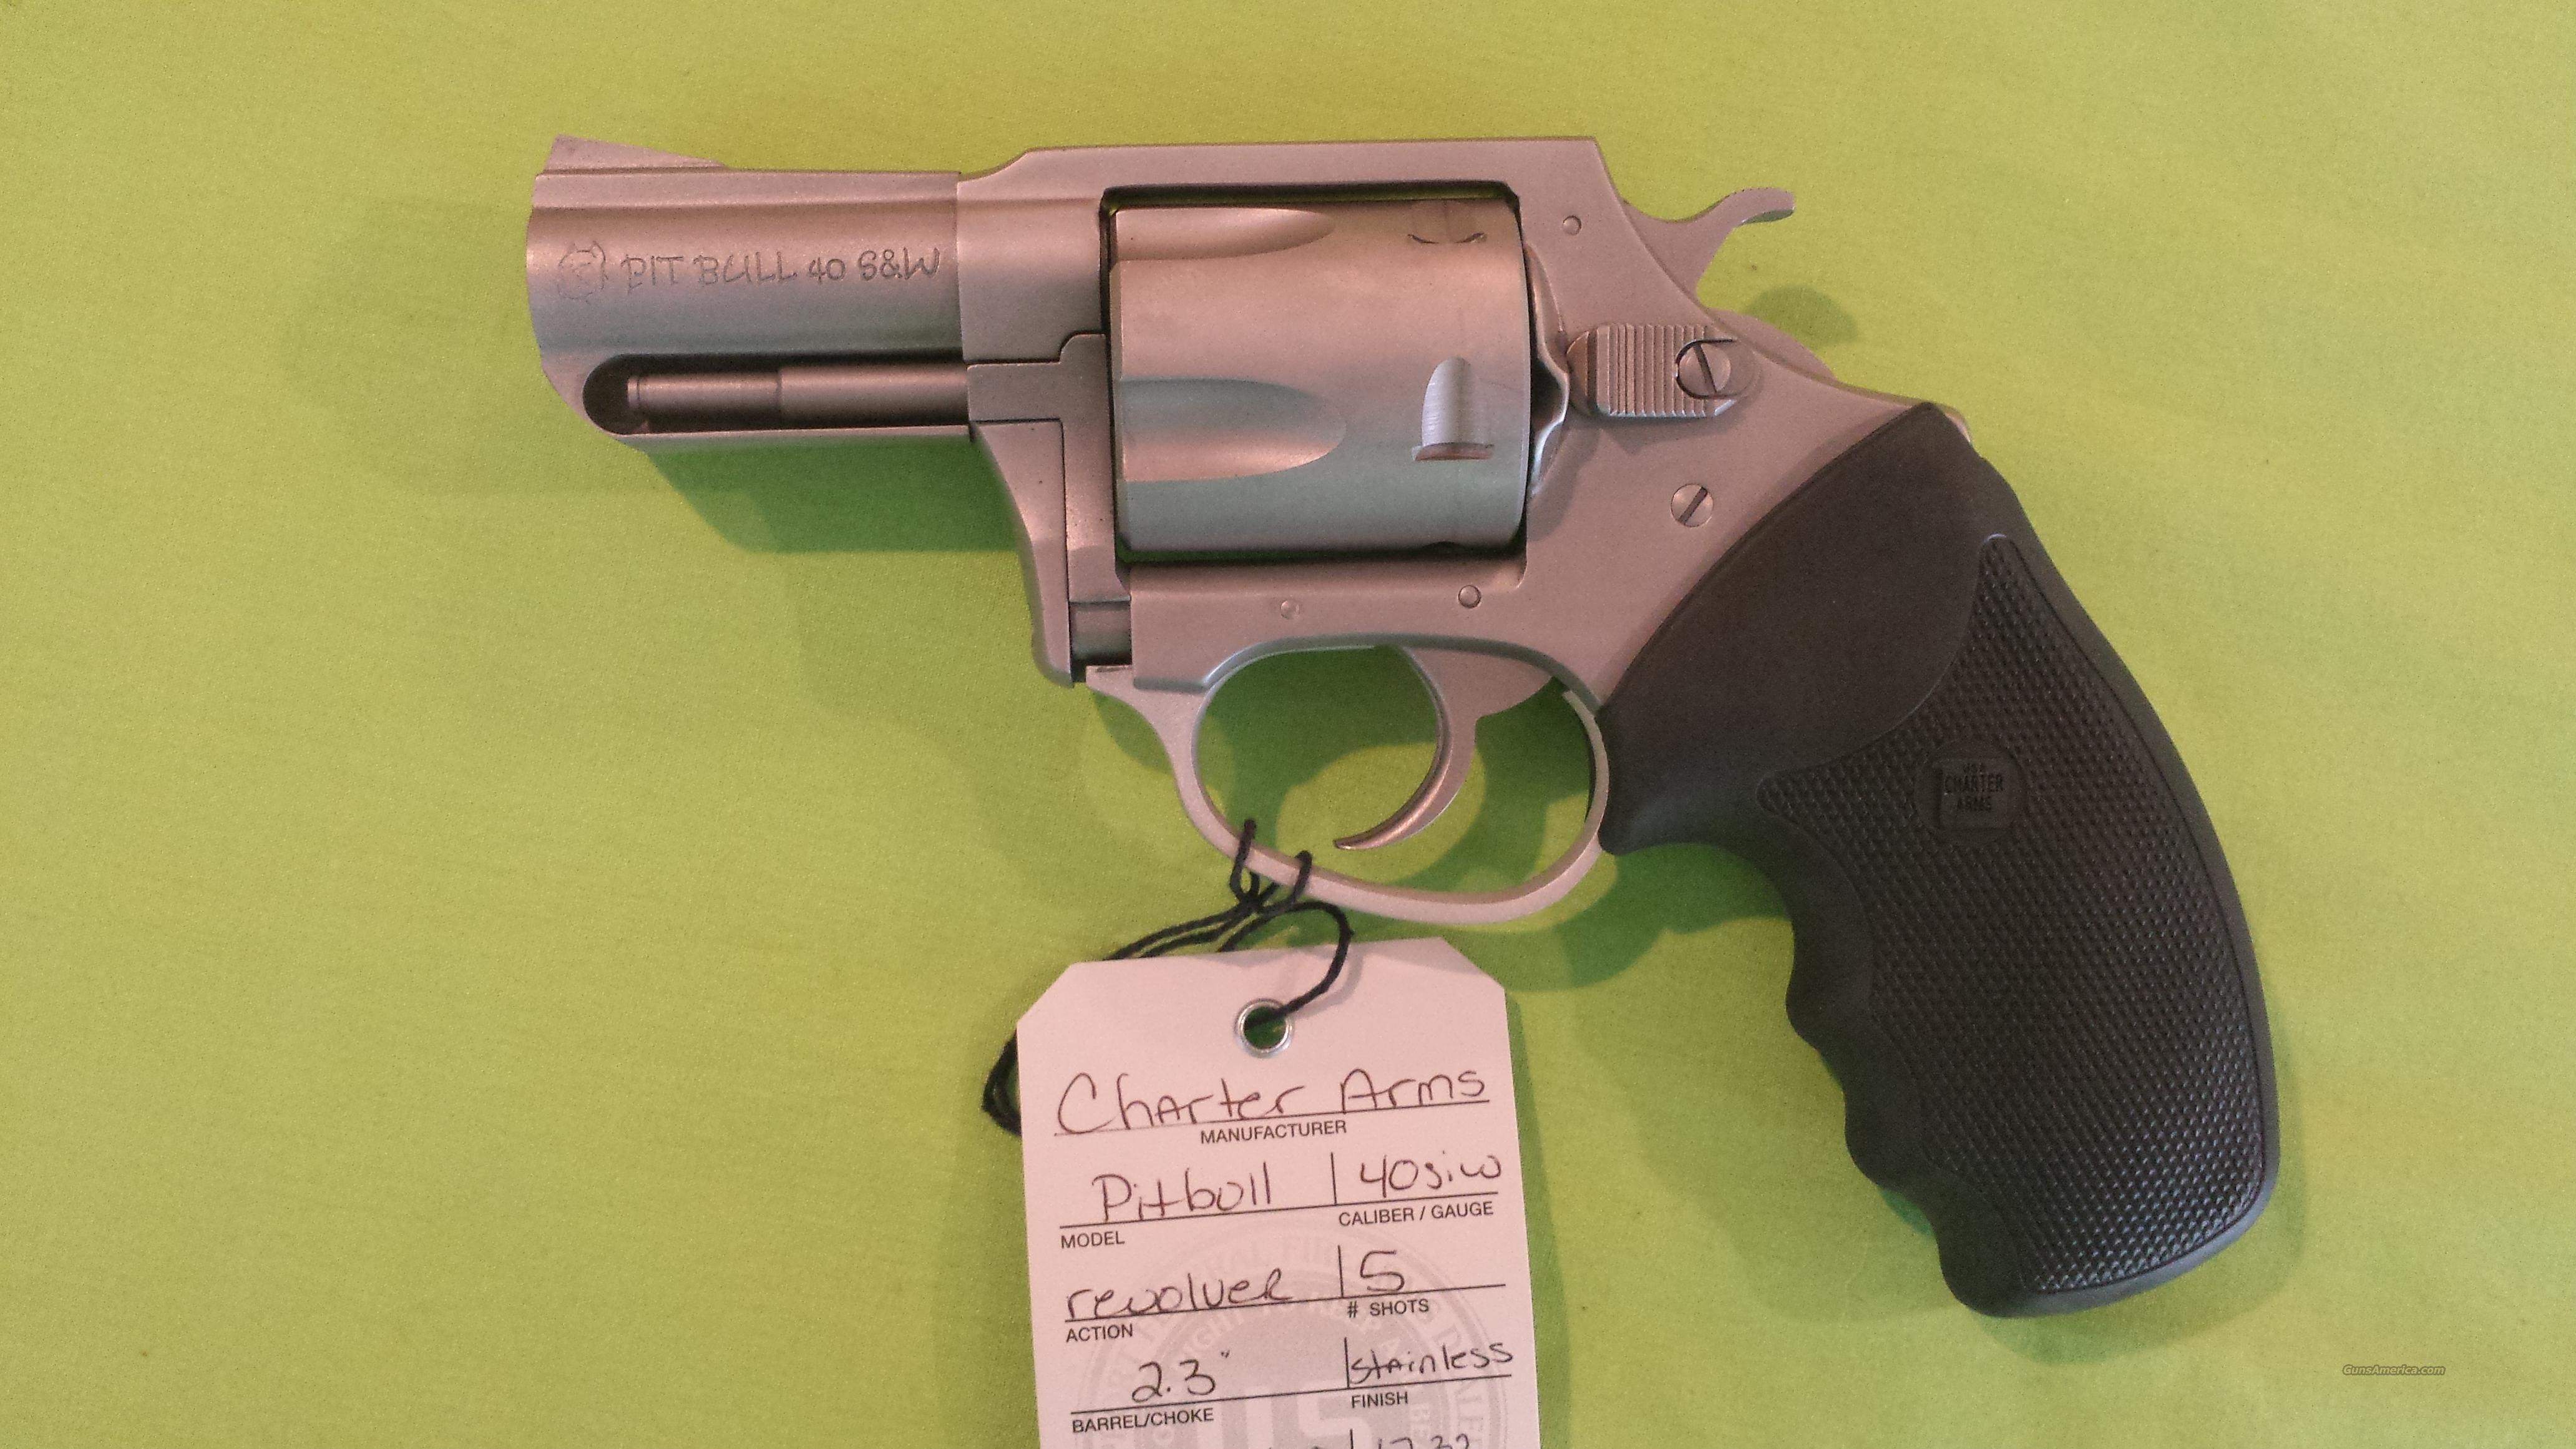 CHARTER ARMS PITBULL 40 40SW REVOLVER STAINLESS  Guns > Pistols > Charter Arms Revolvers